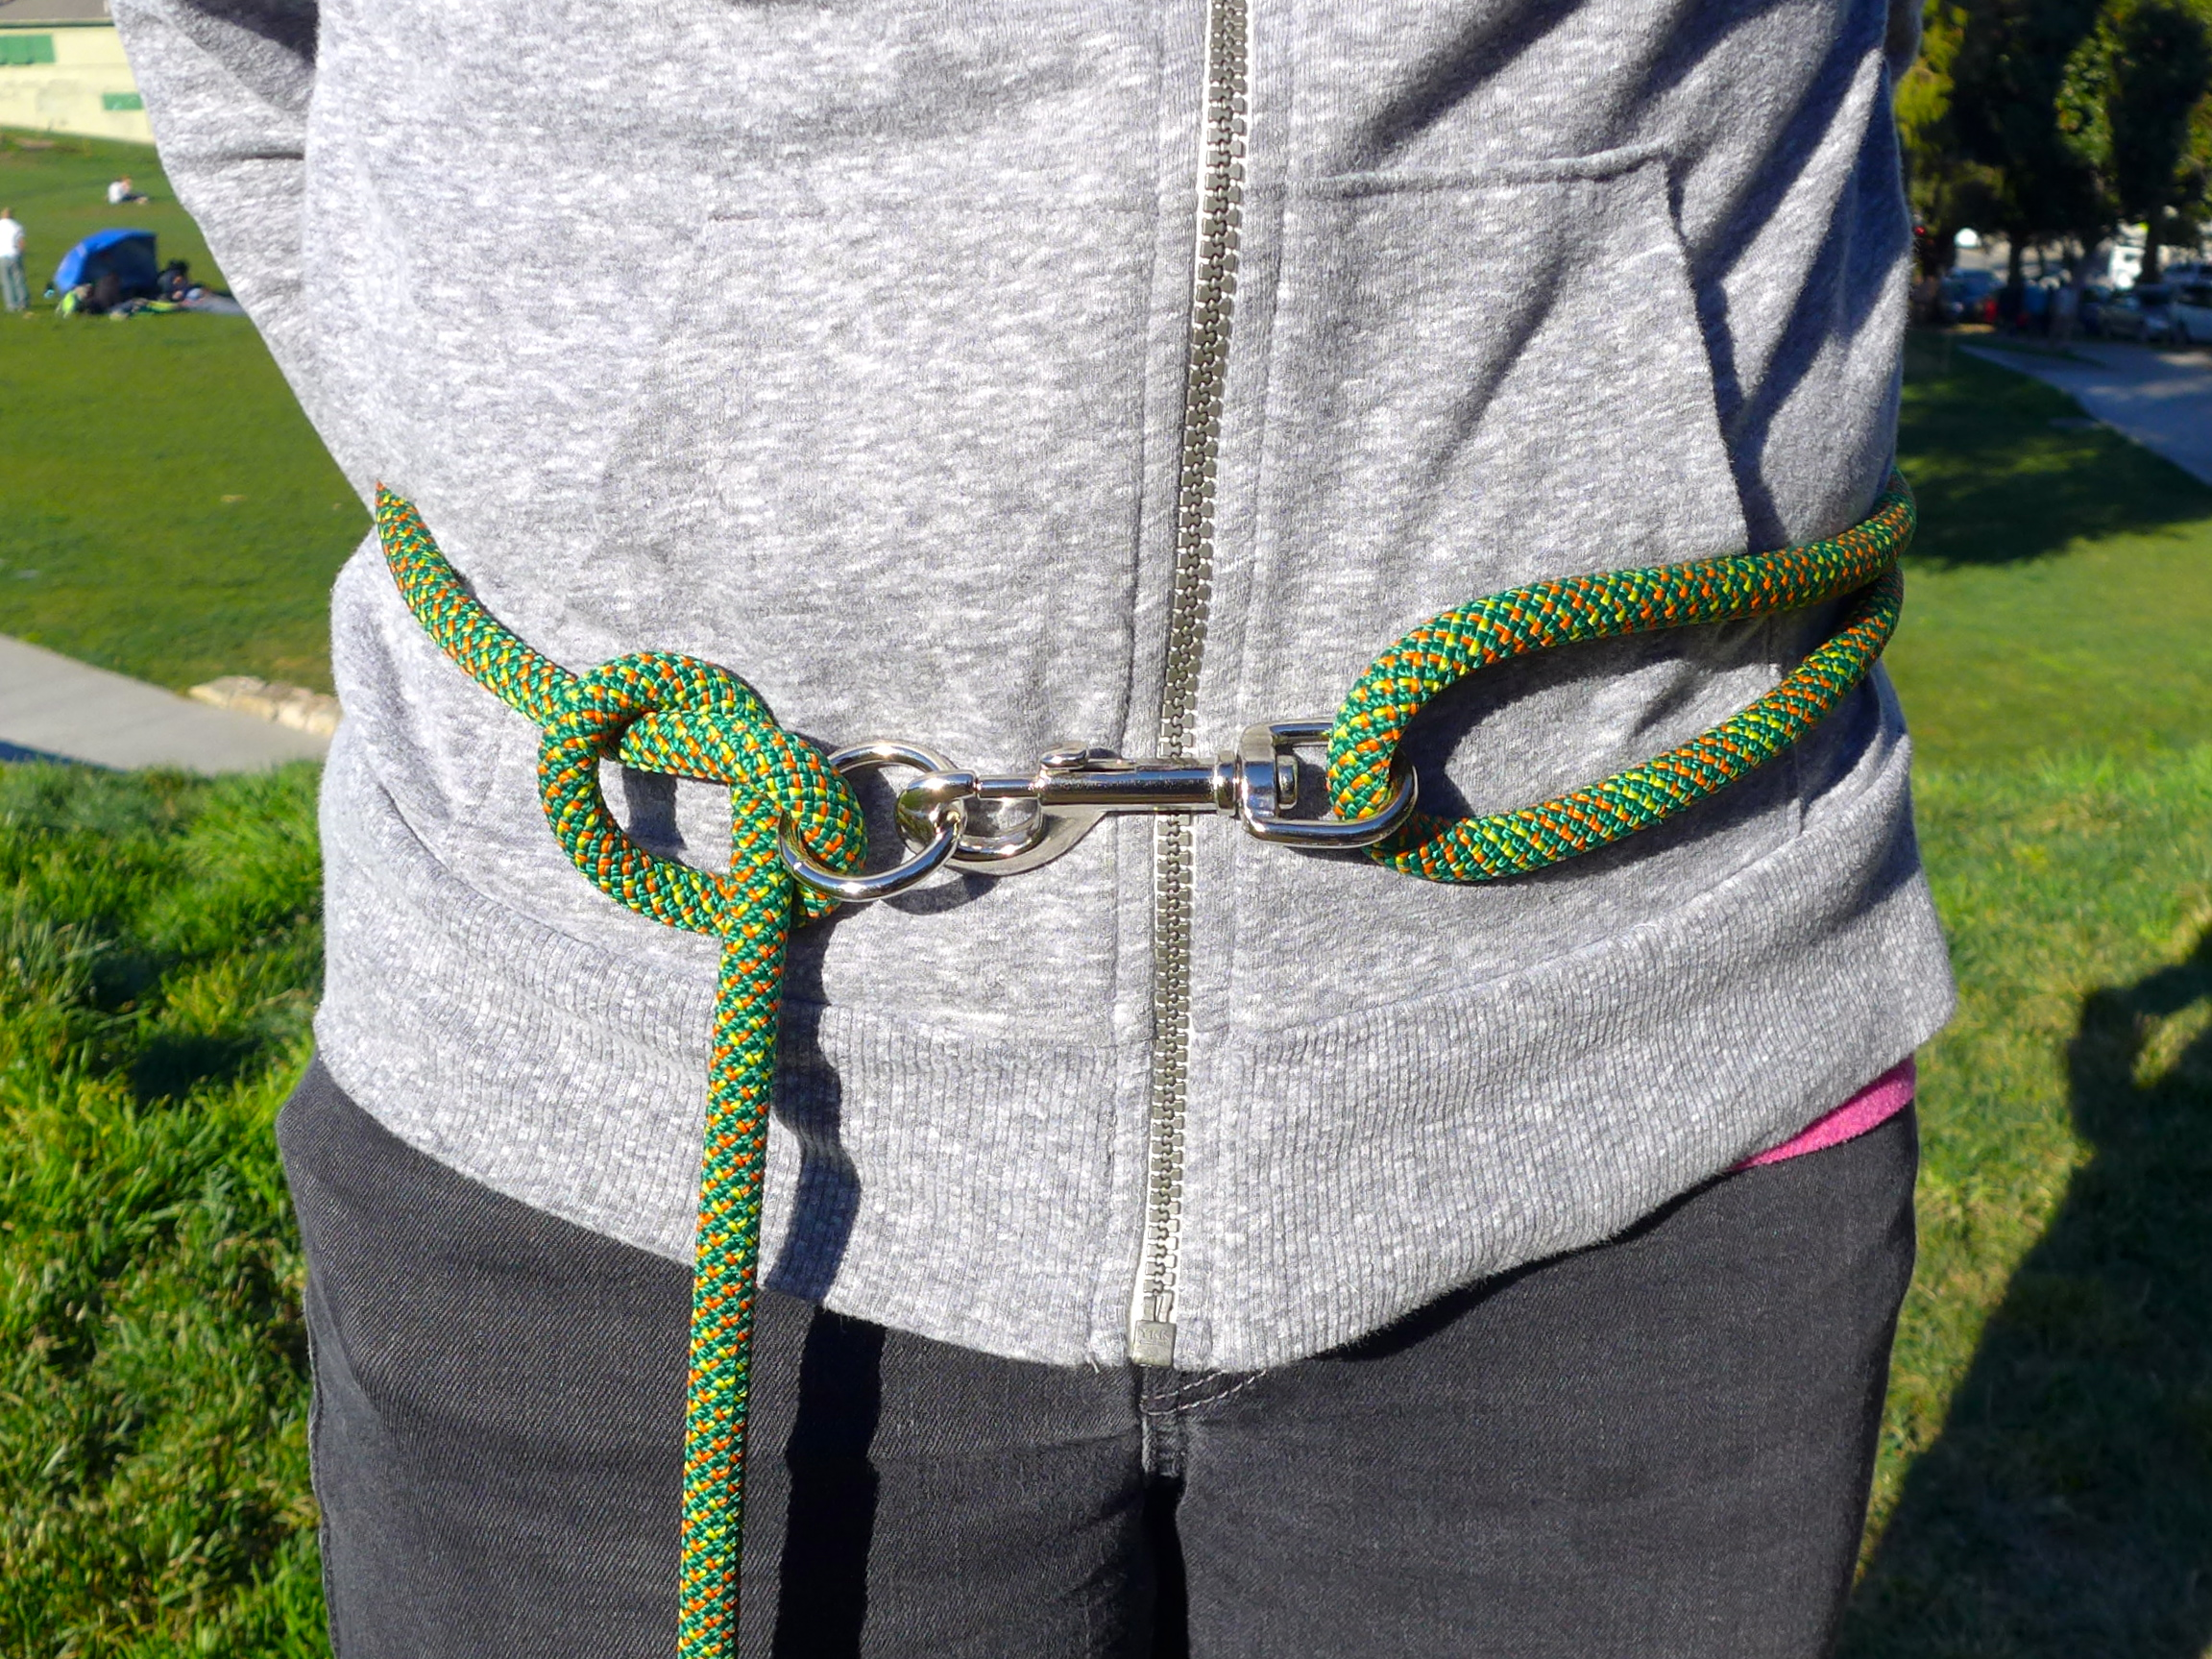 Freebie Time We Re Giving Away A Leash From Mountain Dog